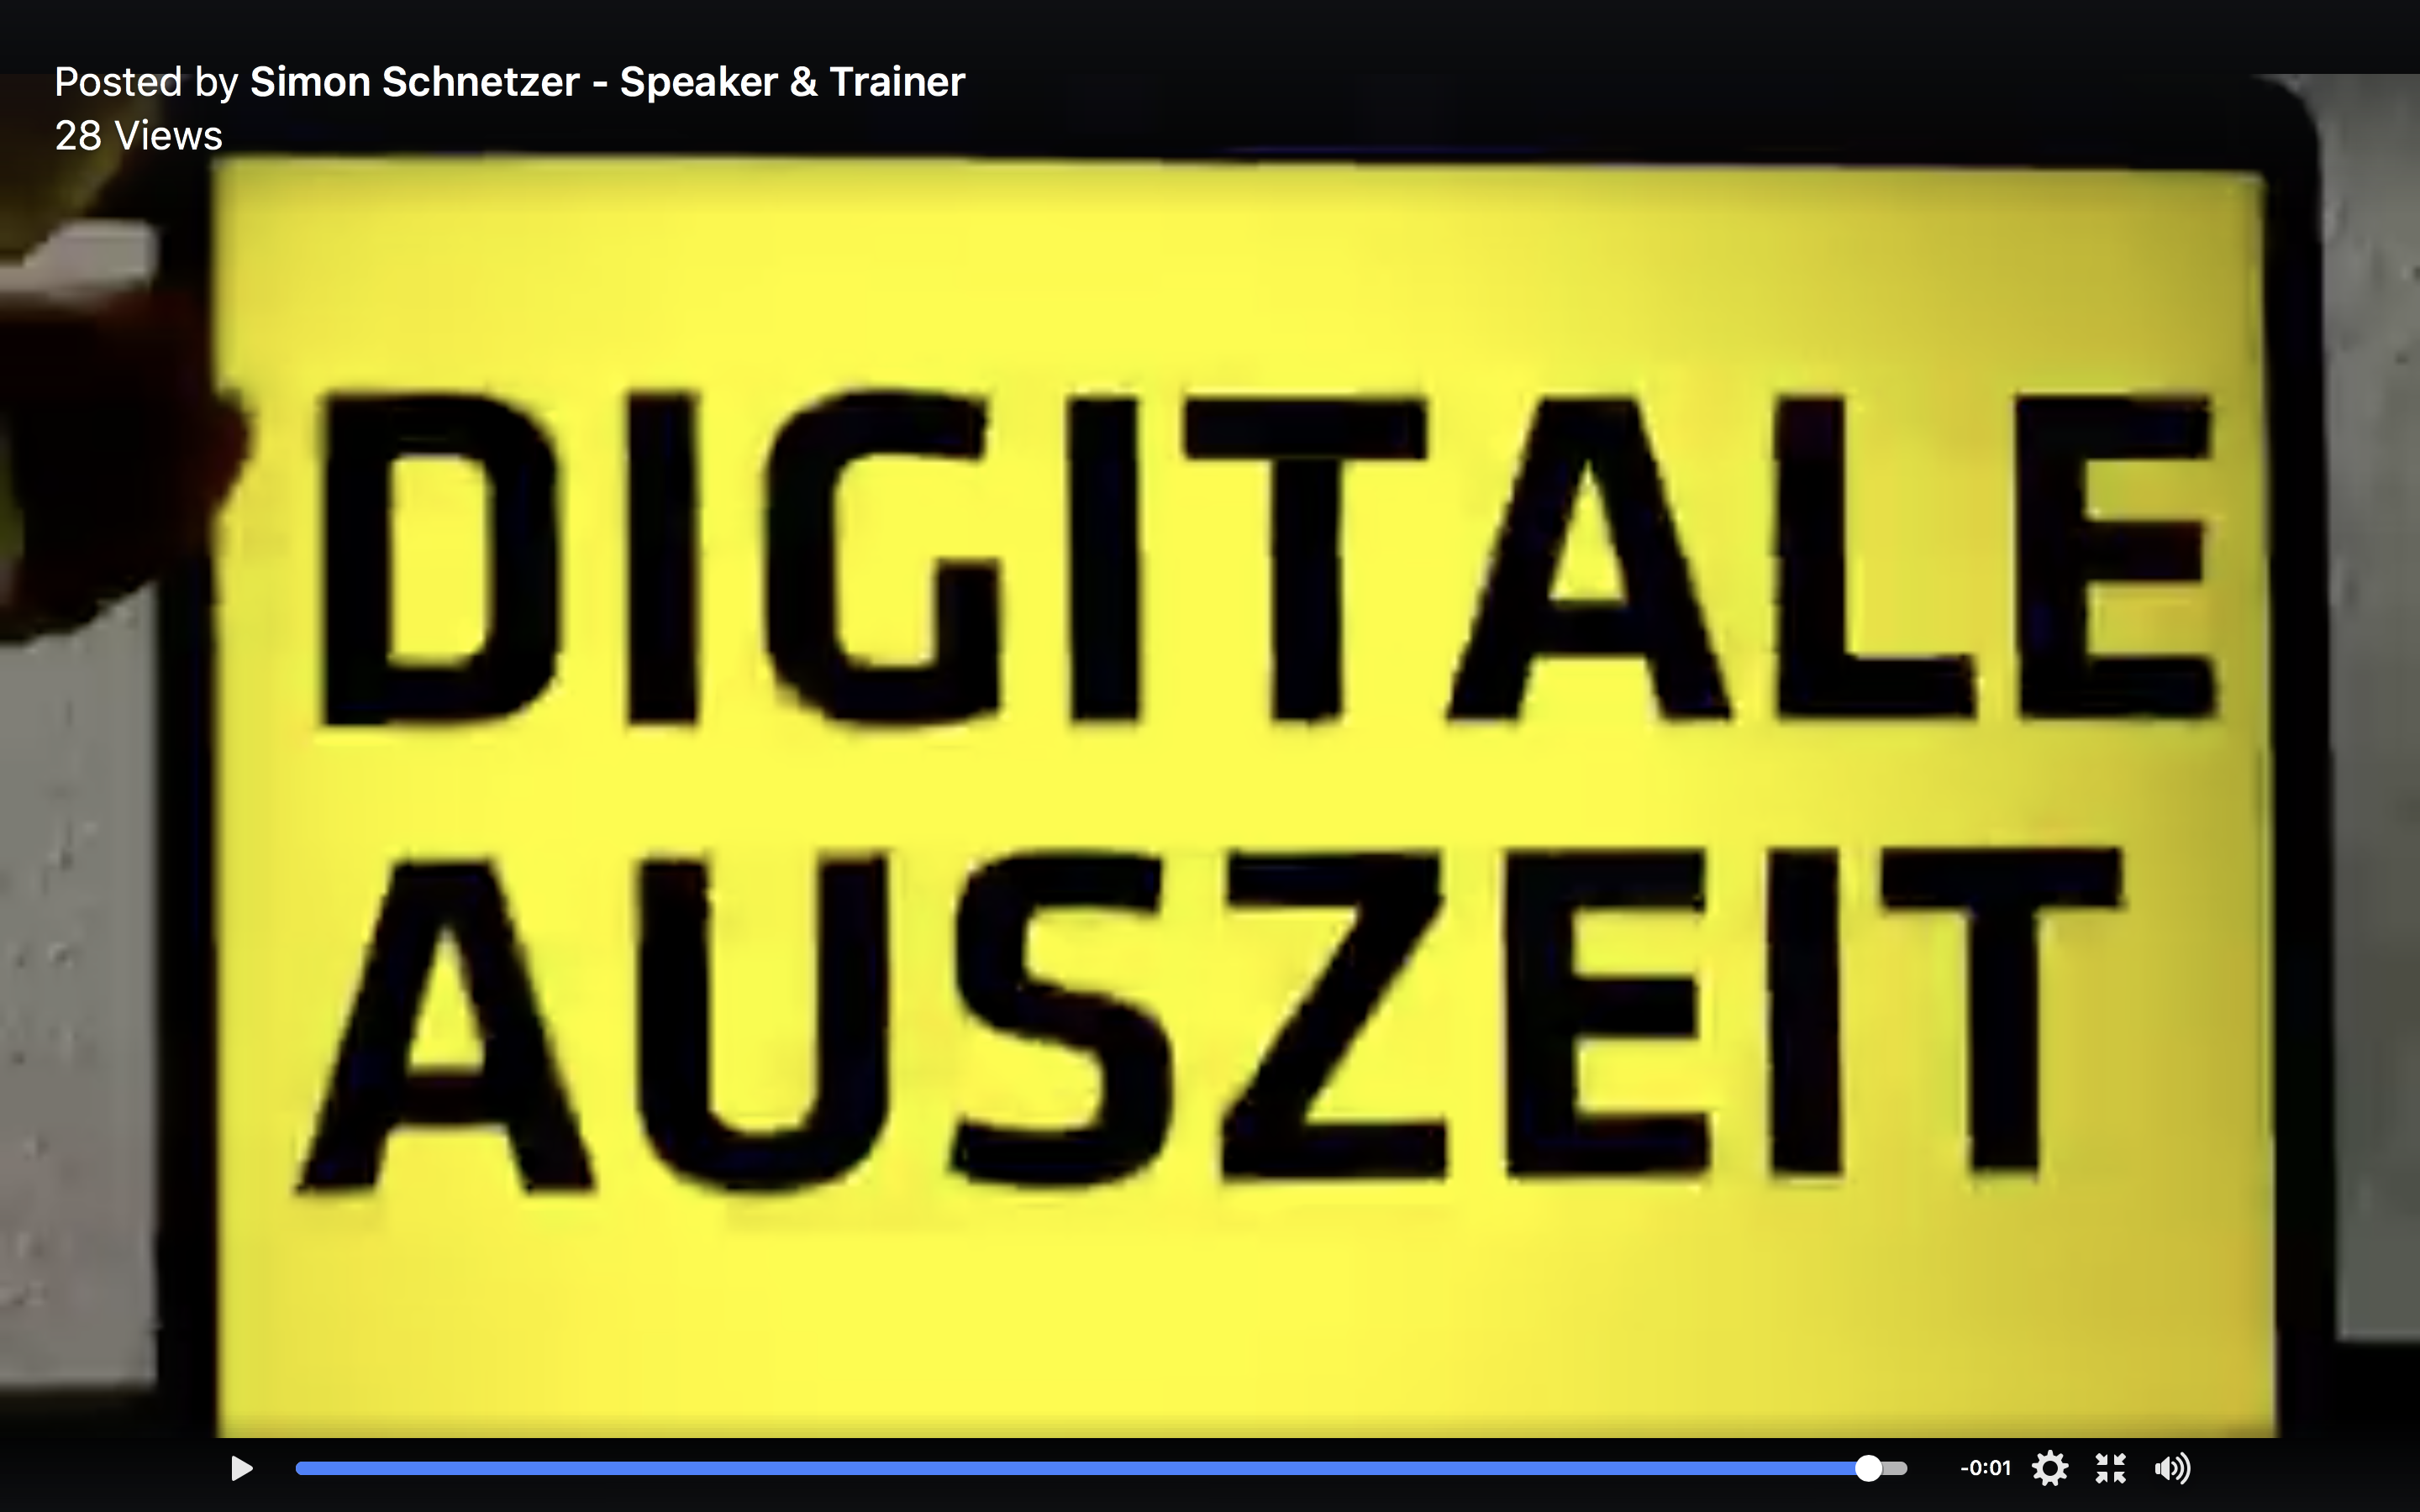 digitaleauszeit